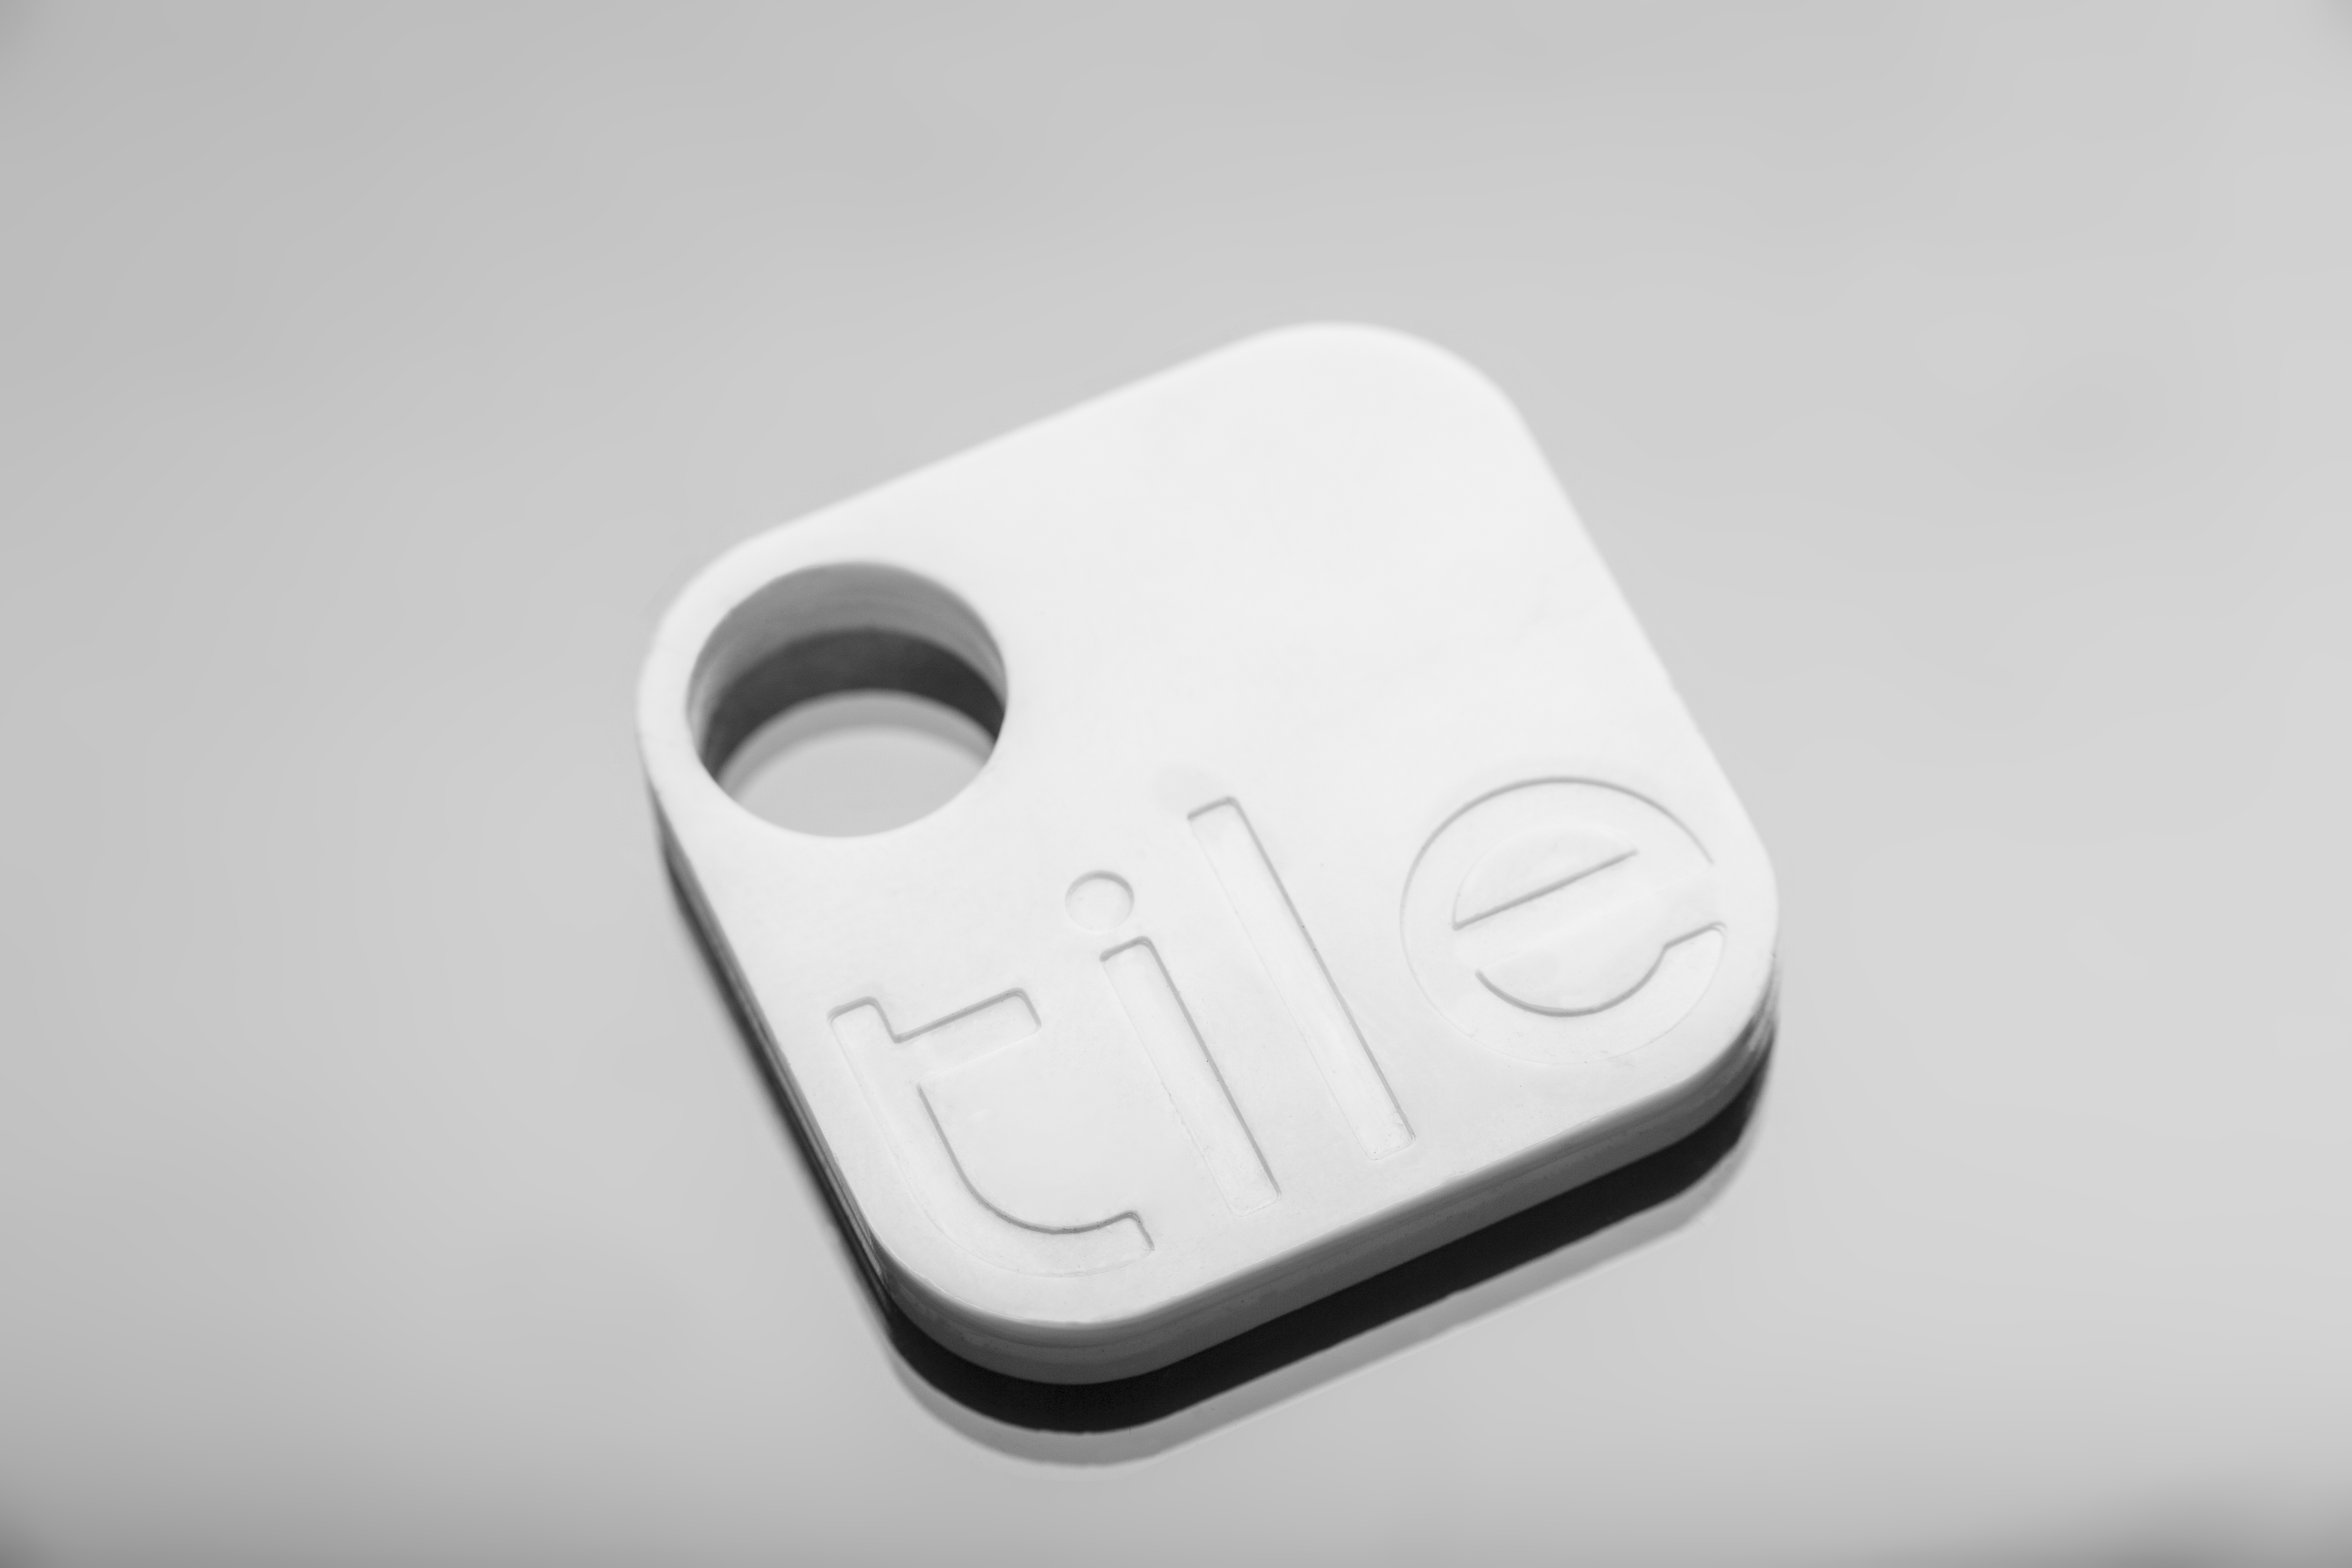 Tile Wants You To Stop Losing Important Stuff With Its Bluetooth Tags Plus Combo Techcrunch